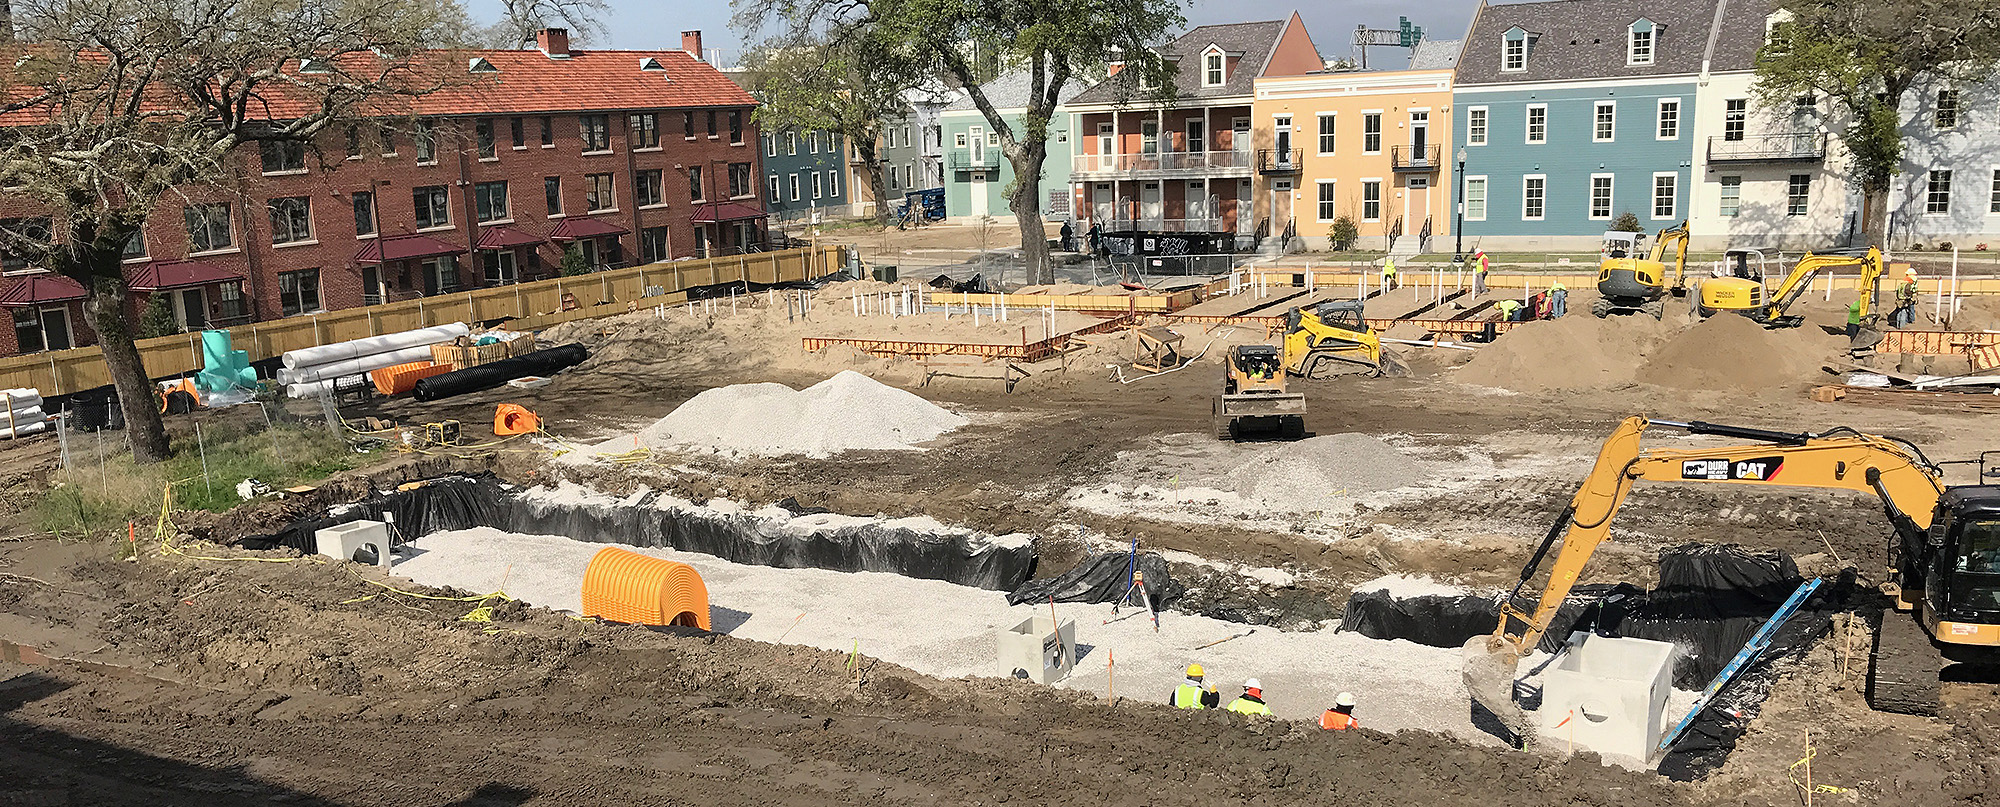 Excavators dig out the ground to install utilities